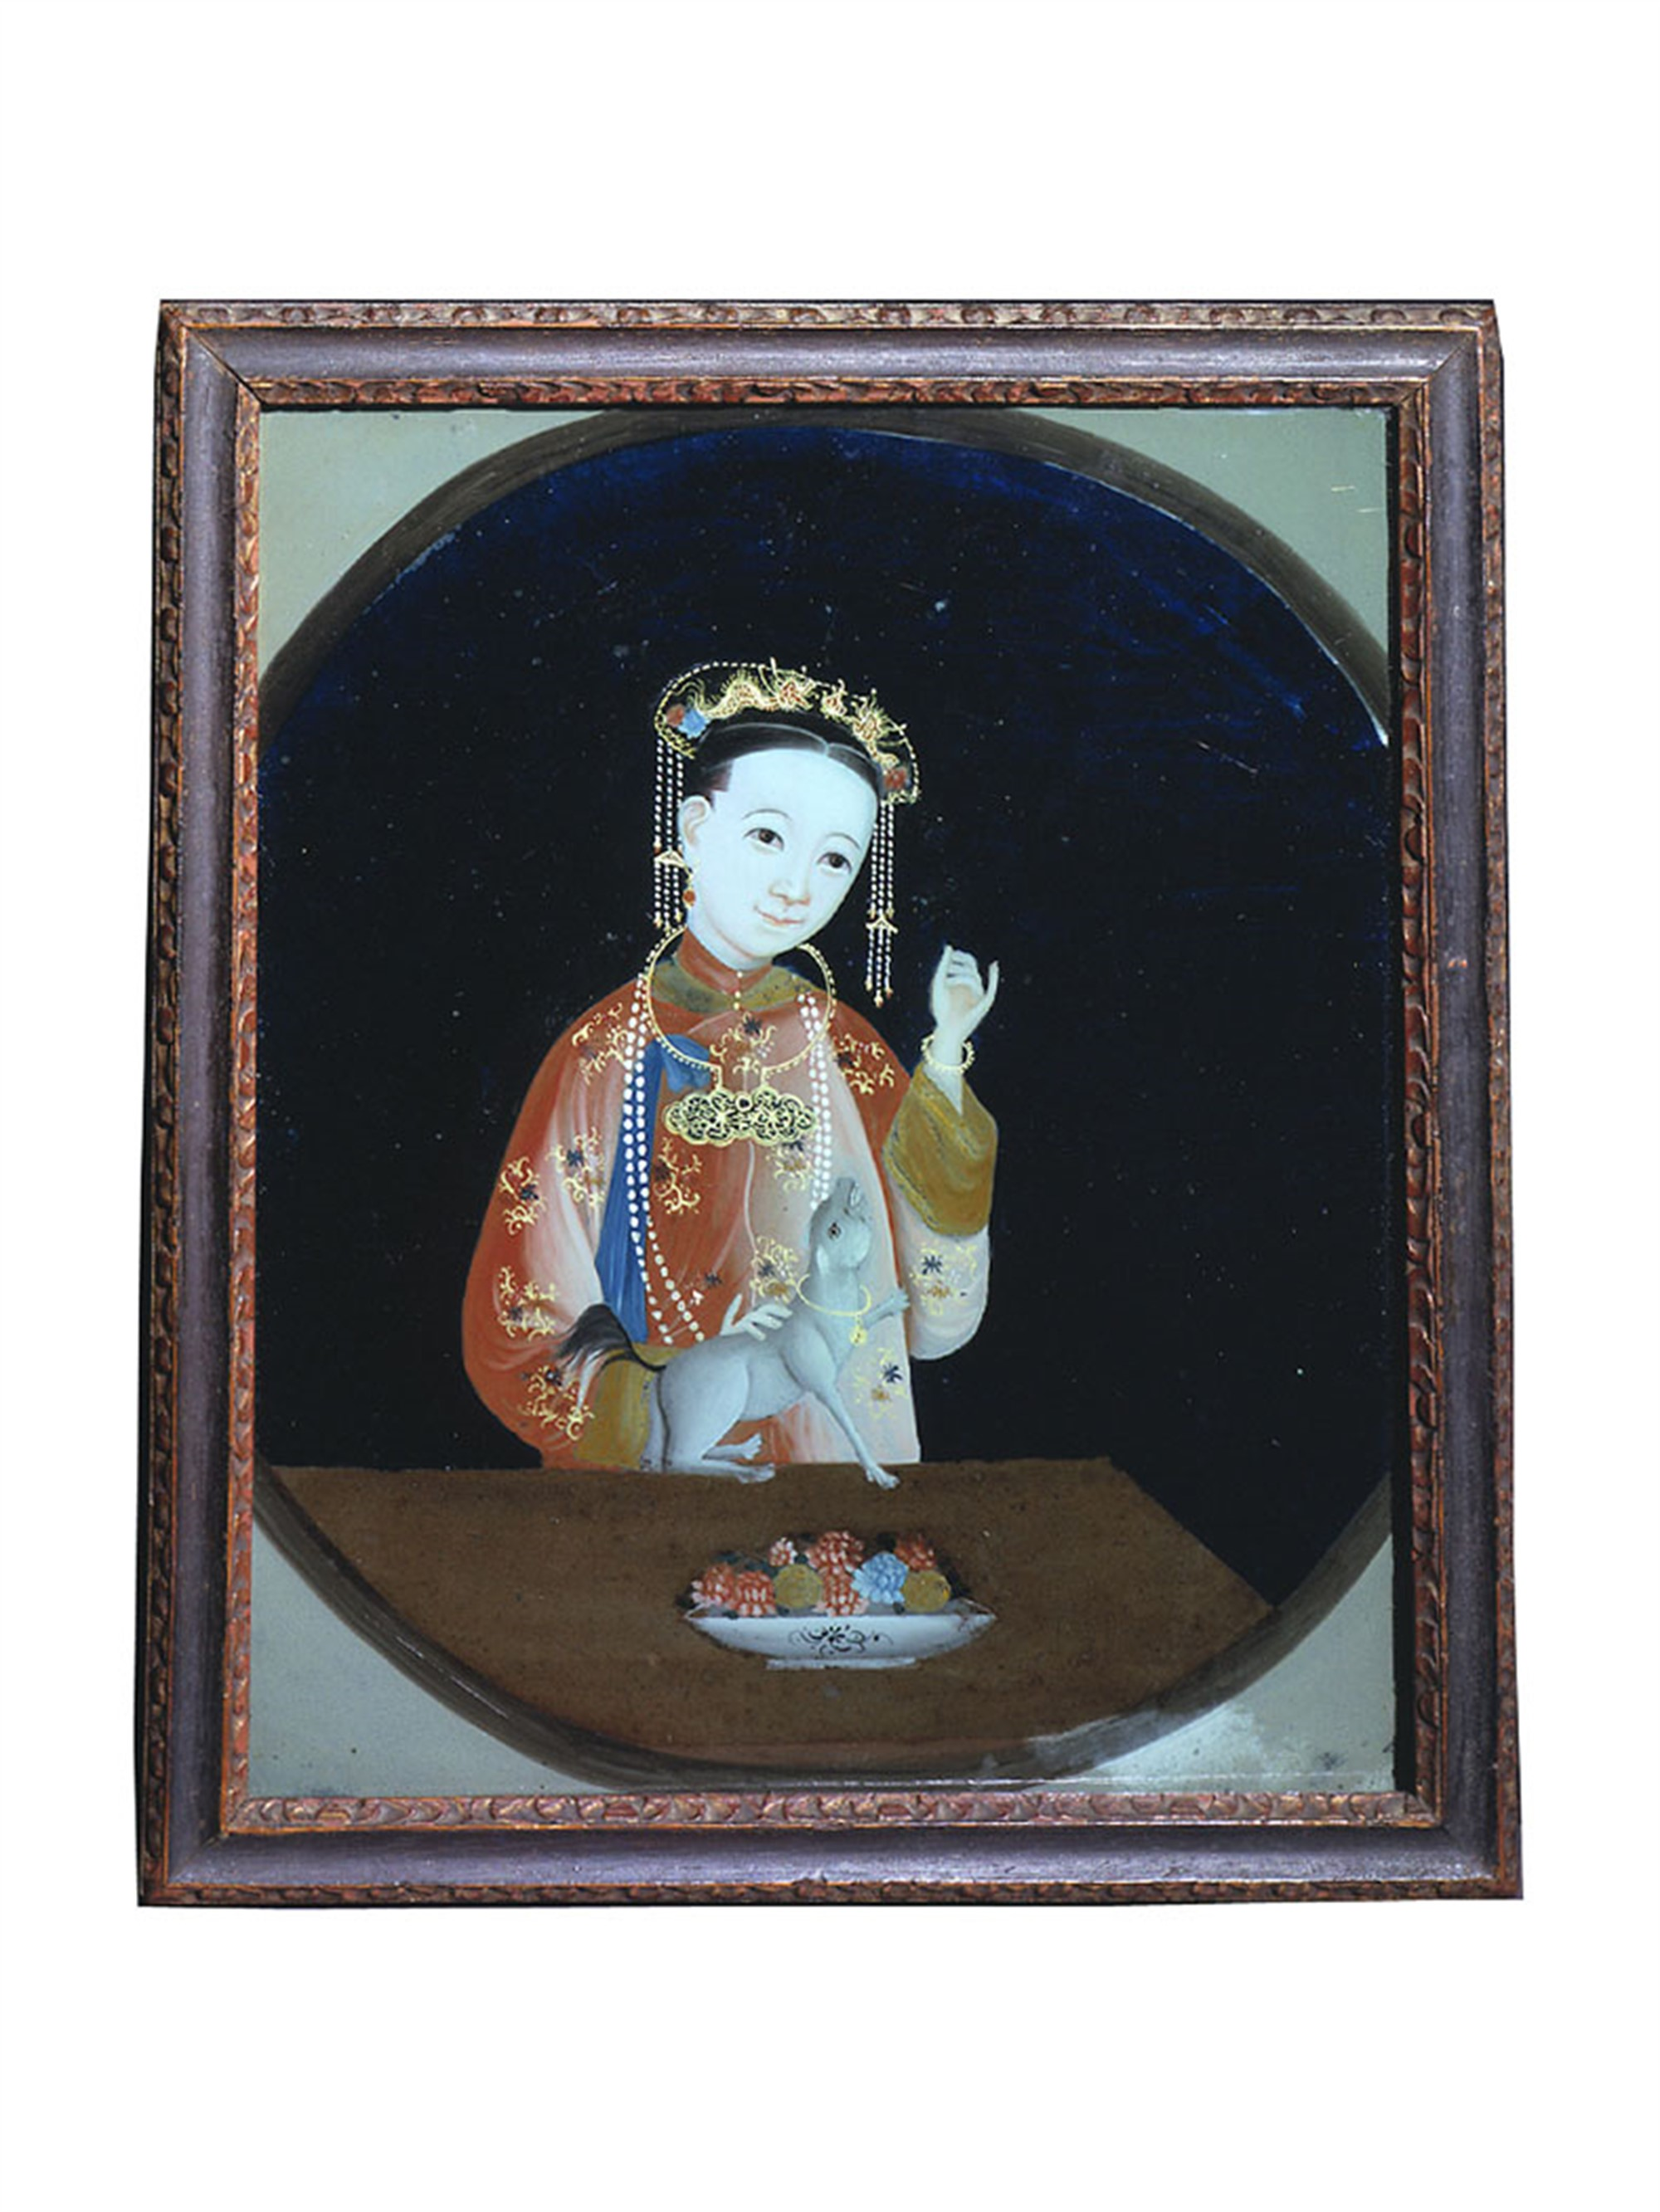 PAIR OF CHINESE REVERSE PAINTINGS ON GLASS WITH LADY AND HOUND